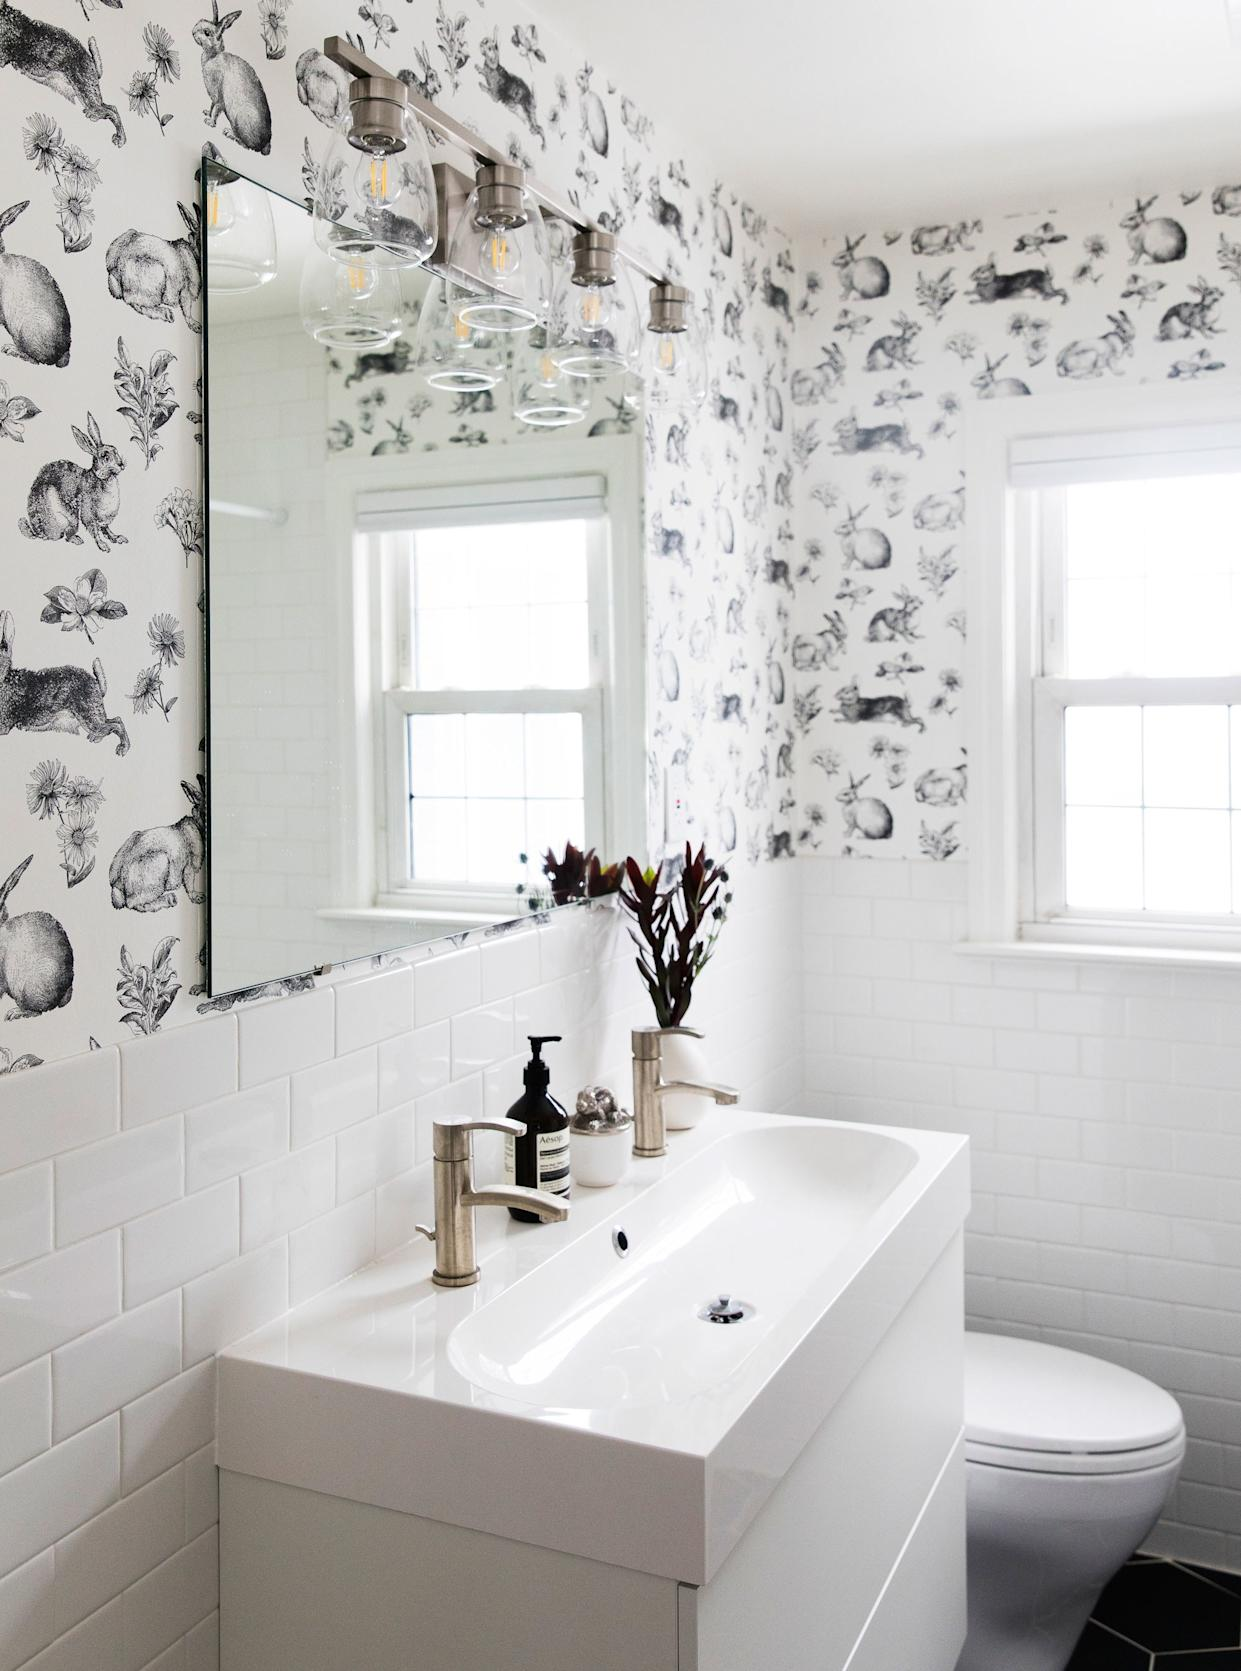 """<div class=""""caption""""> After: A double sink in the bathroom makes for extra storage in the vanity. </div> <cite class=""""credit"""">Photo: Jillian Guyette</cite>"""